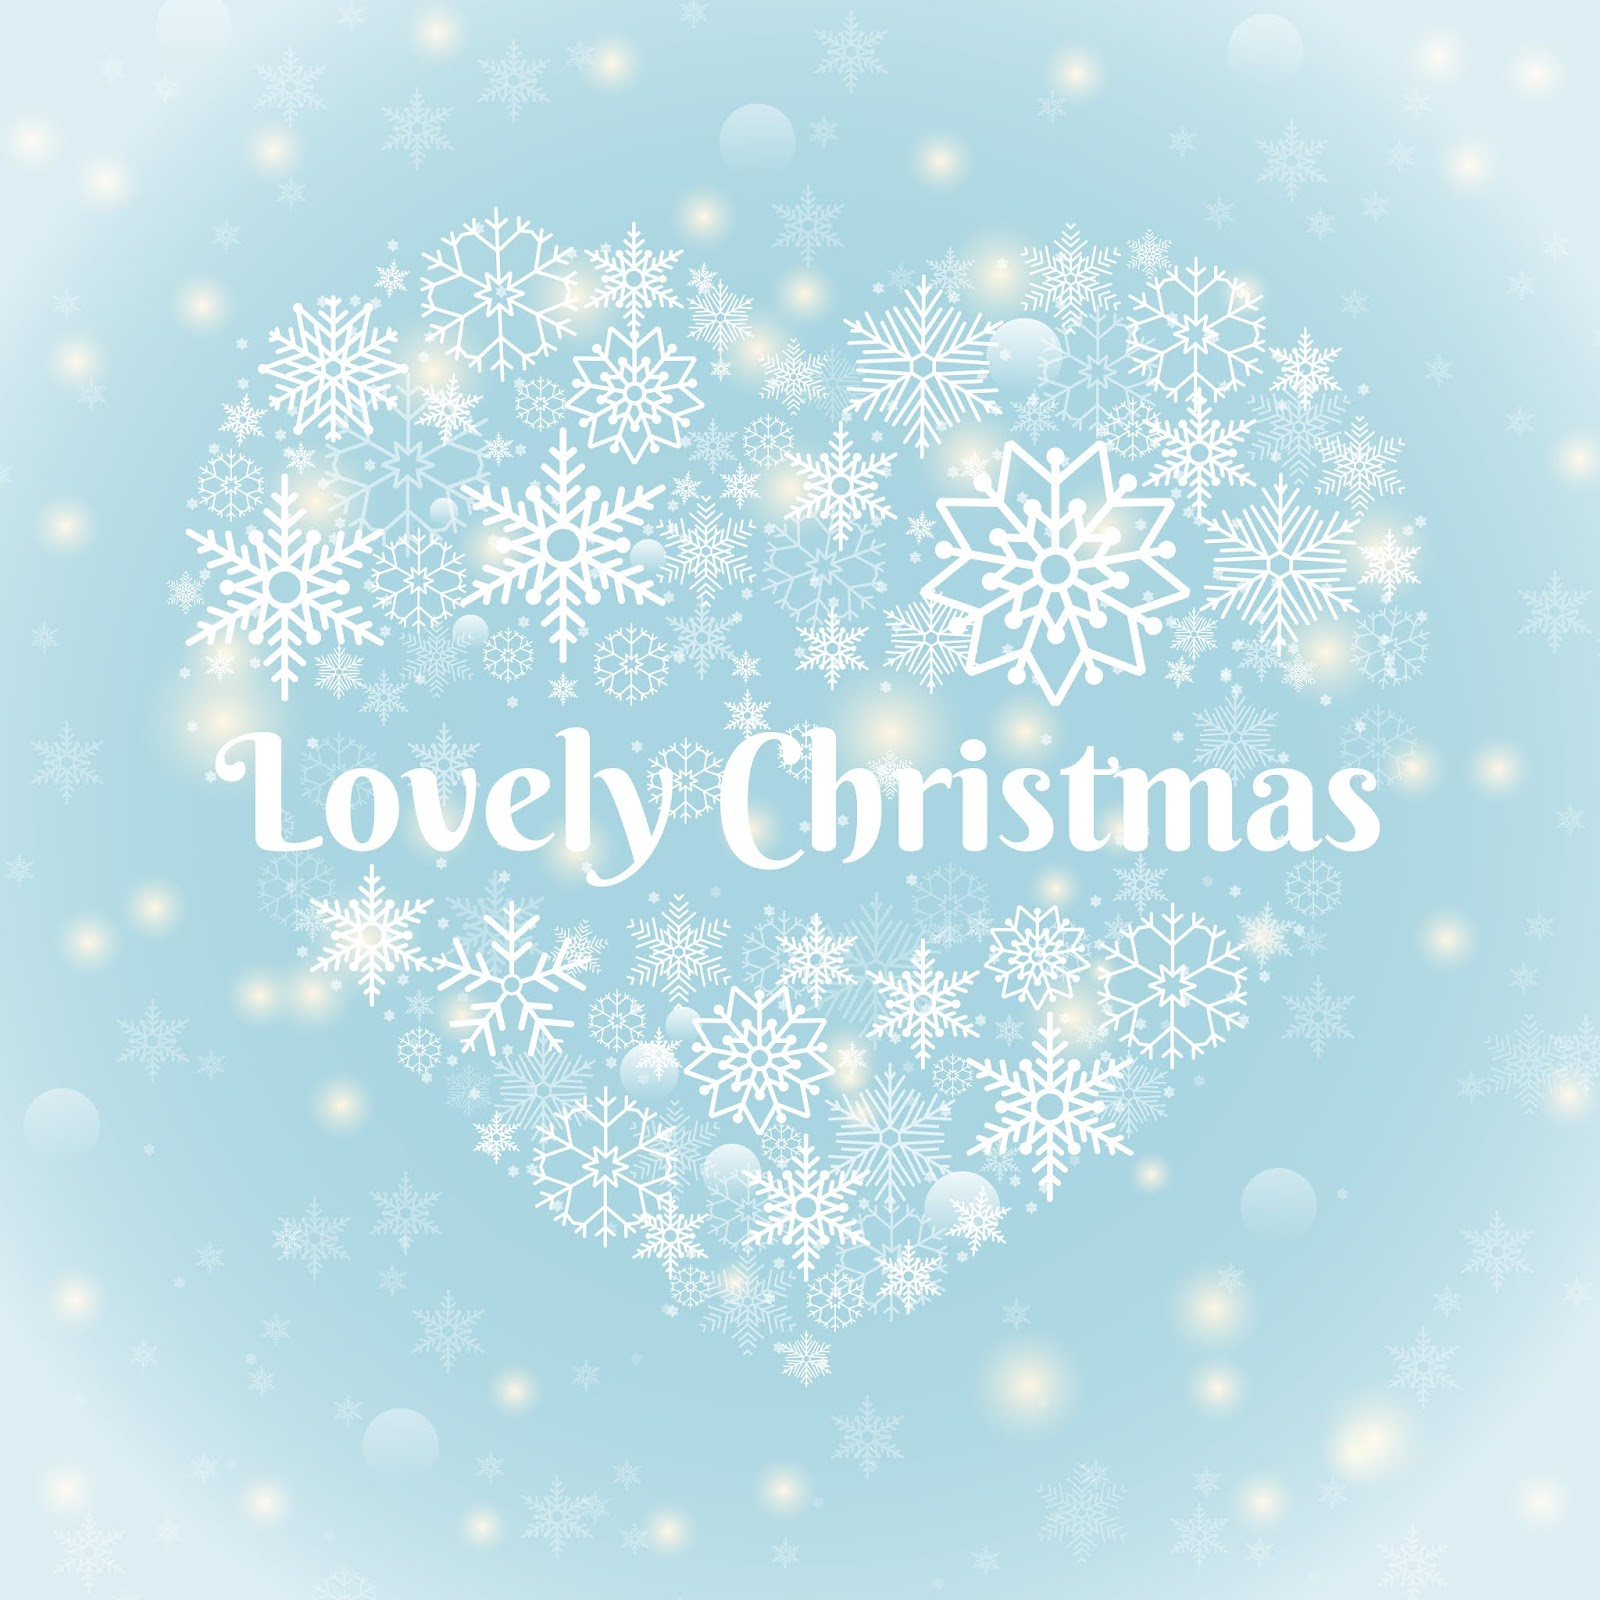 Christmas Concept Lovely Christmas Texts Heart Shape Snowflakes Sky Blue Background With Sparks Free Download Vector CDR, AI, EPS and PNG Formats